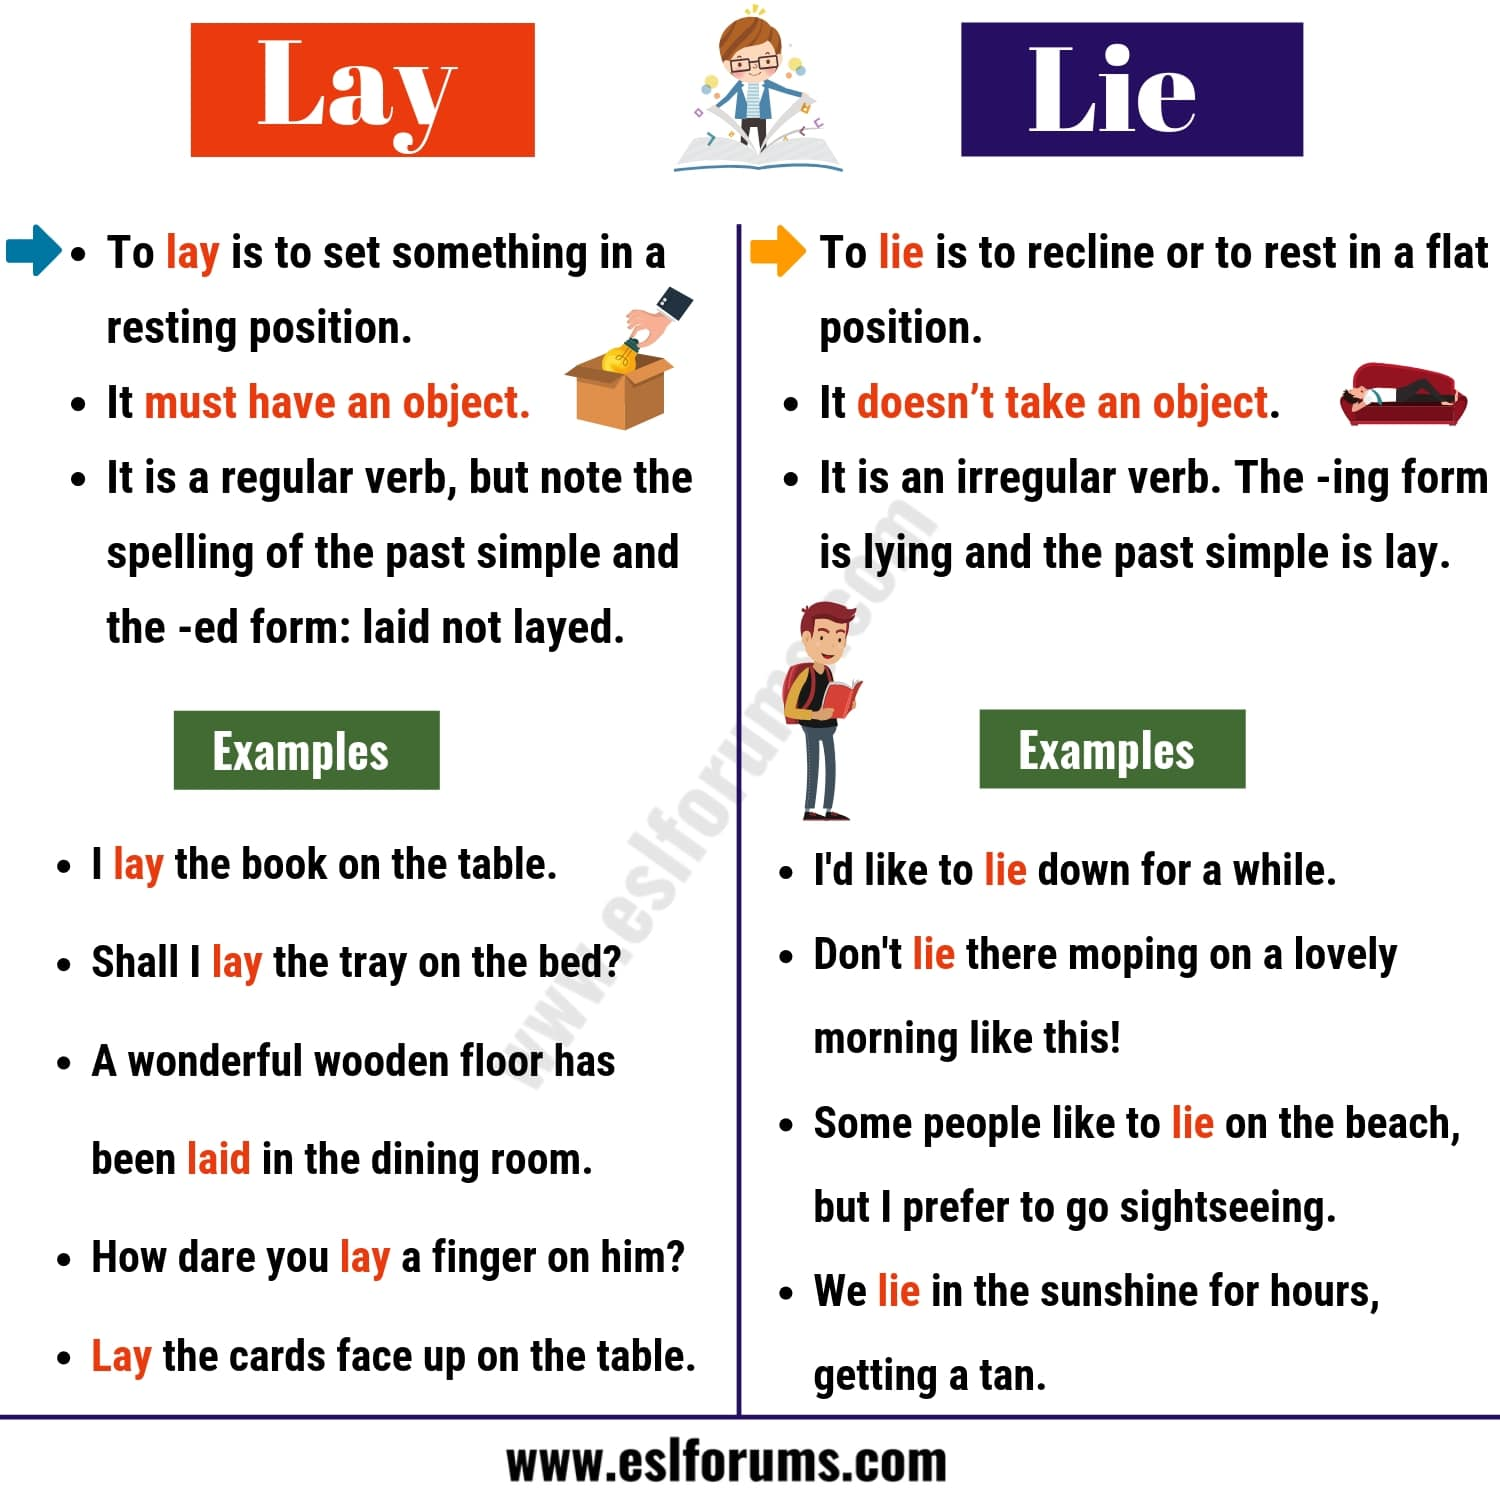 LAY vs LIE: How to Use Lay vs Lie Correctly?